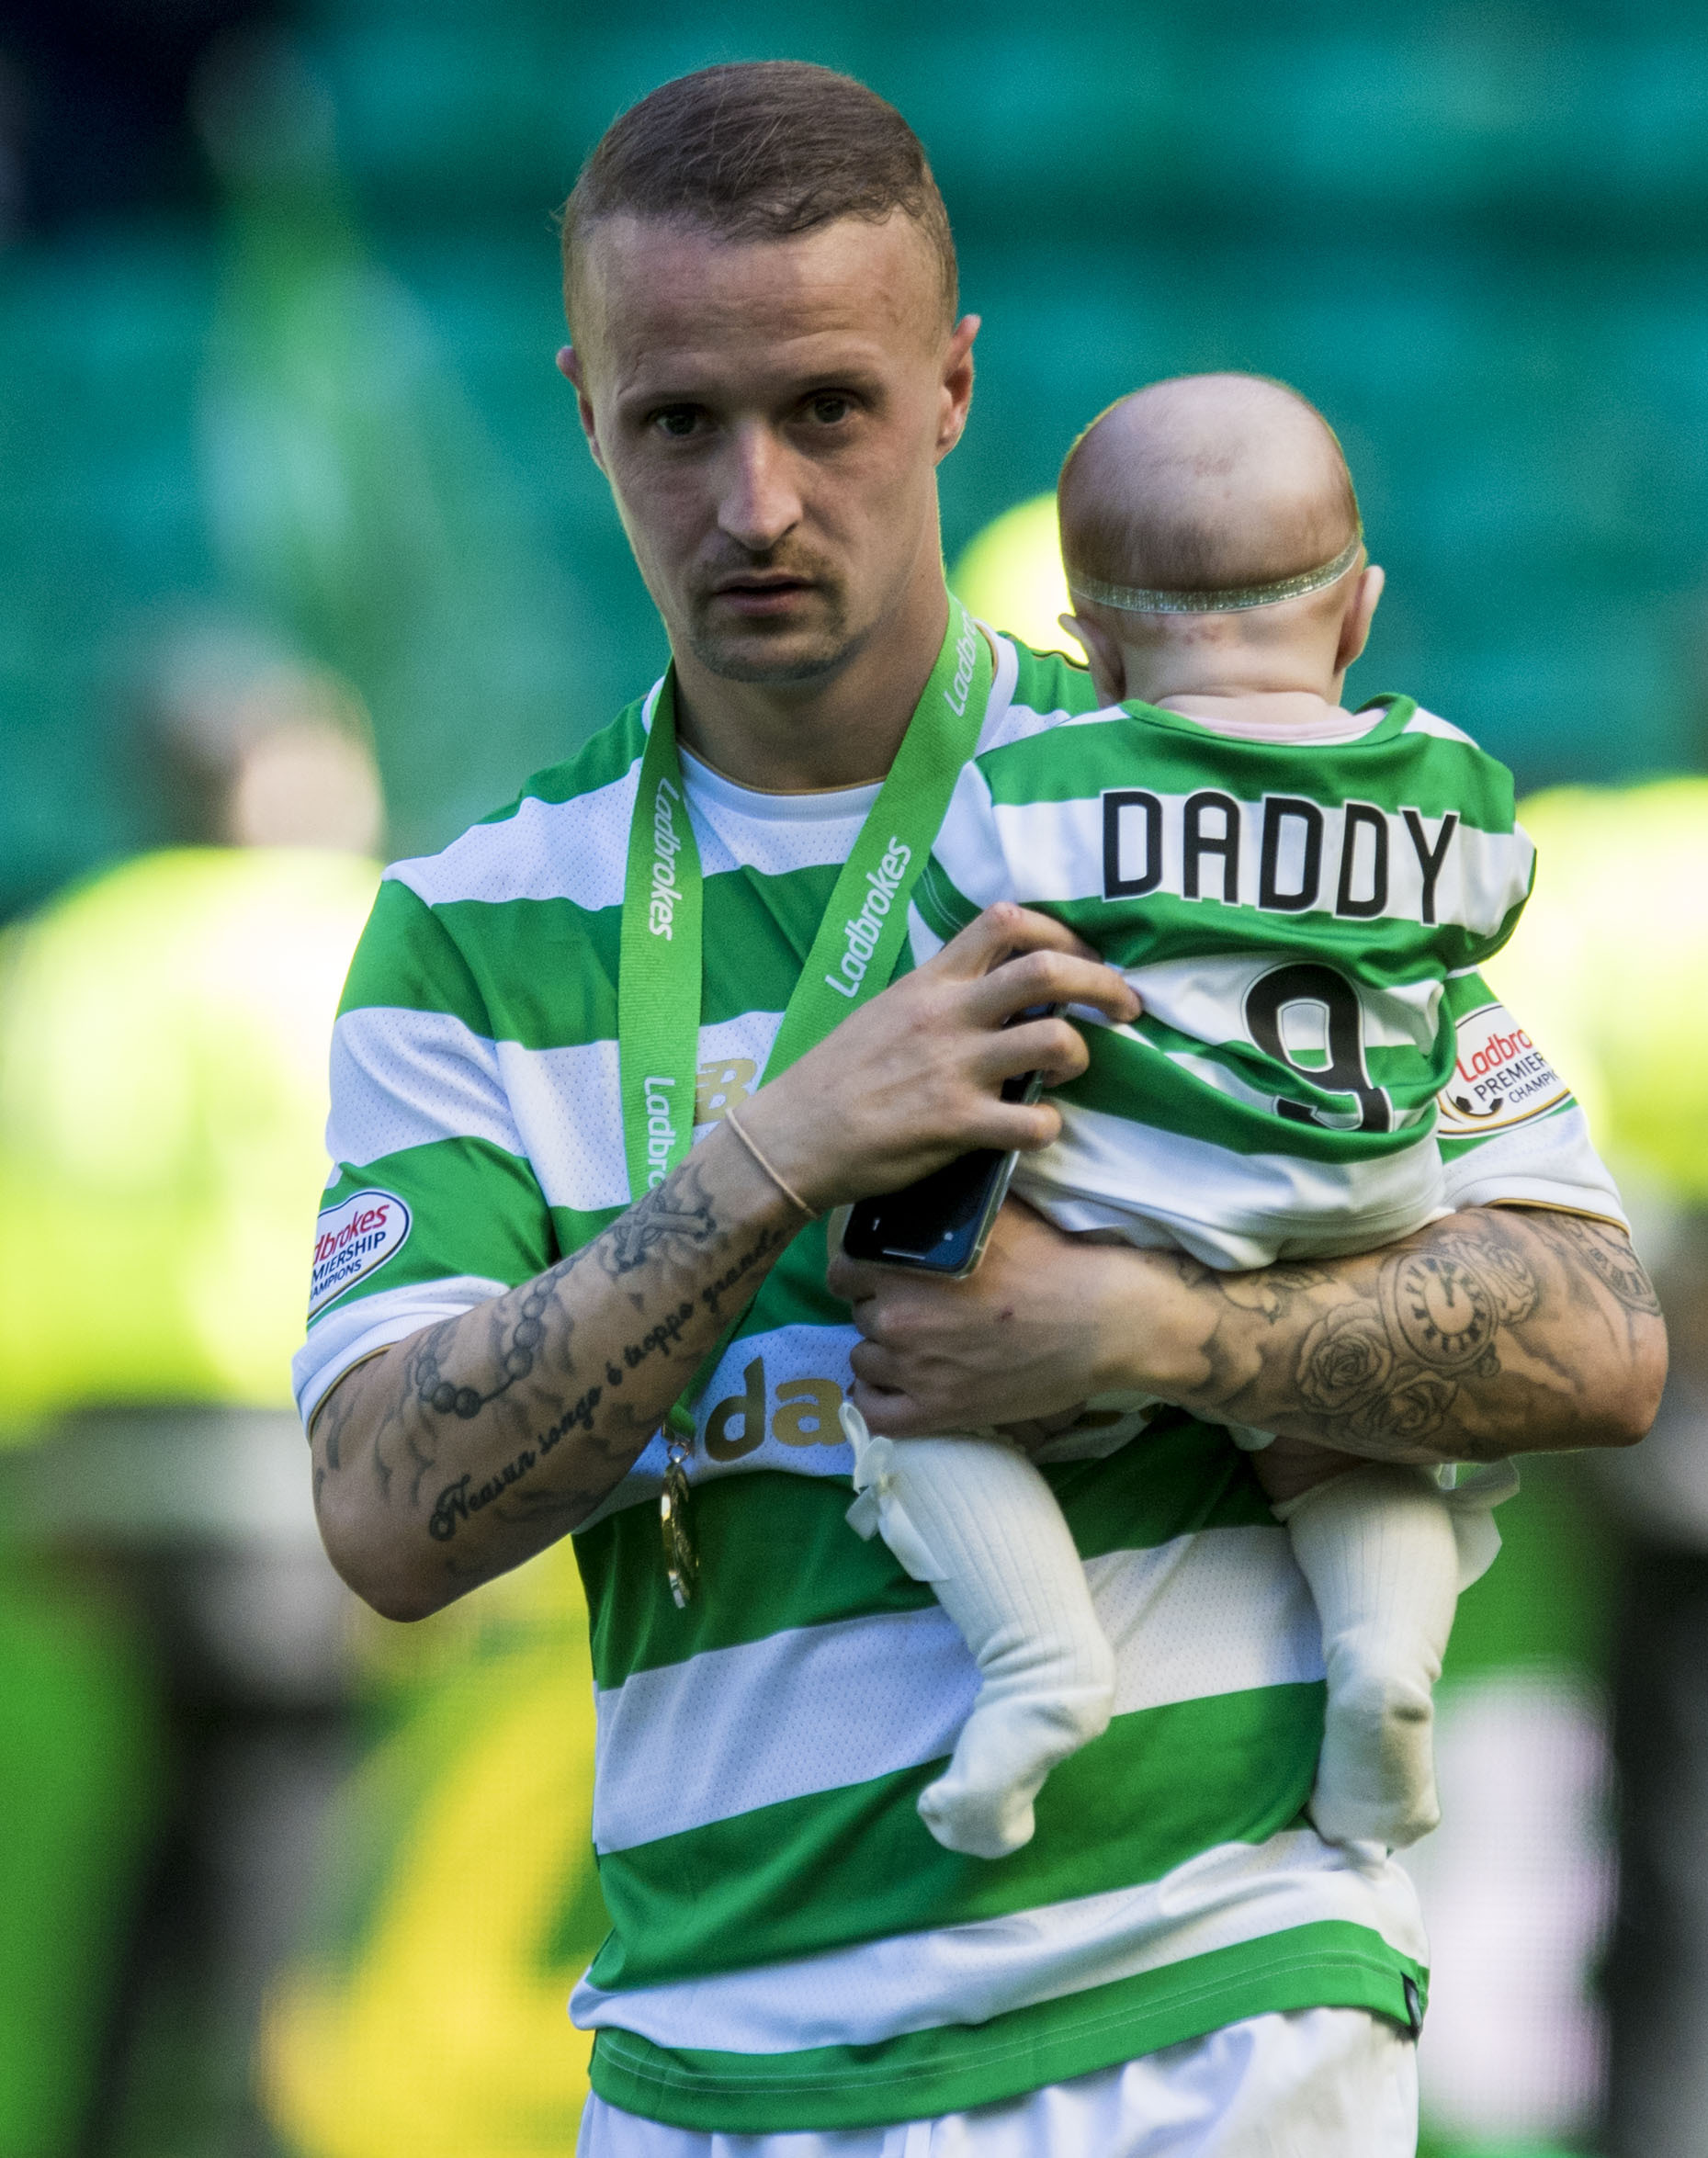 Celtic's Leigh Griffiths failed to hit the heights this season